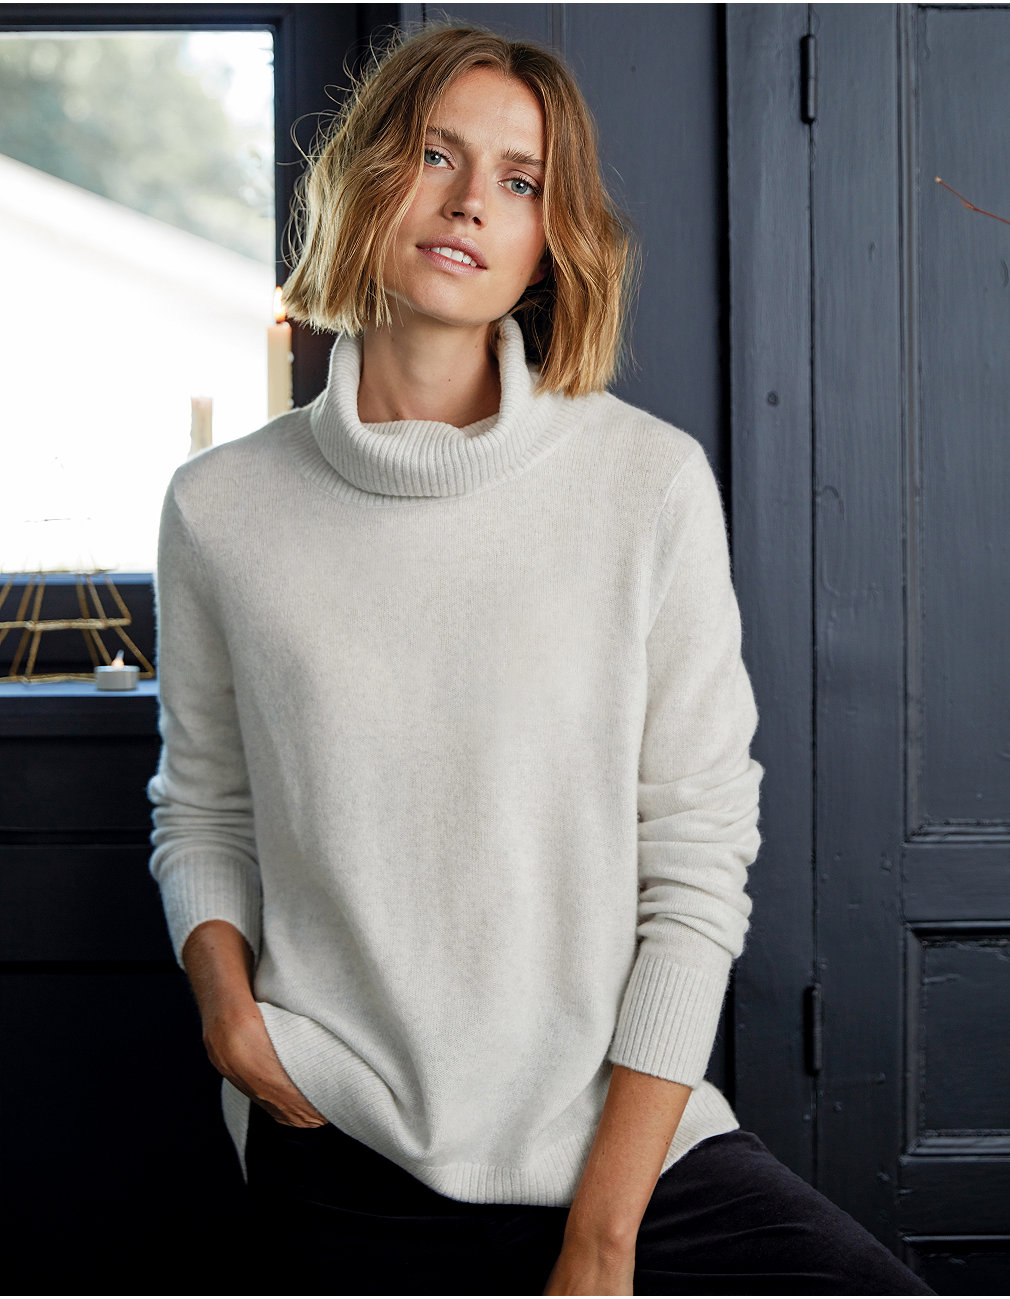 531772e28 Added to bag. Checkout. Continue shopping. The White Company · Clothing ·  Sweaters   Cardigans  Cashmere Roll Neck Sweater